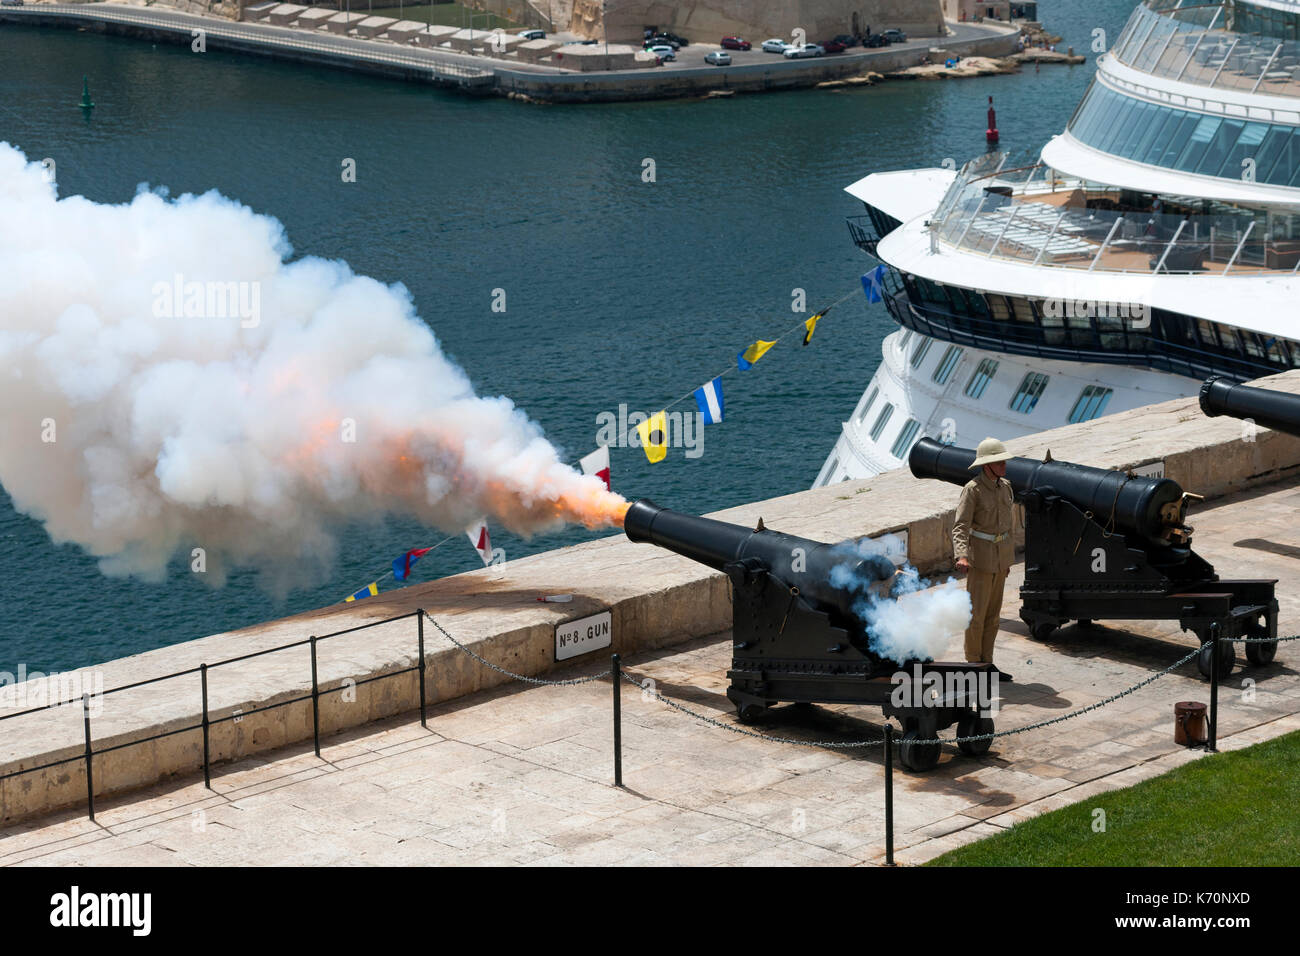 The noon cannon being fired from the Saluting Battery in Valletta, the capital of Malta. - Stock Image